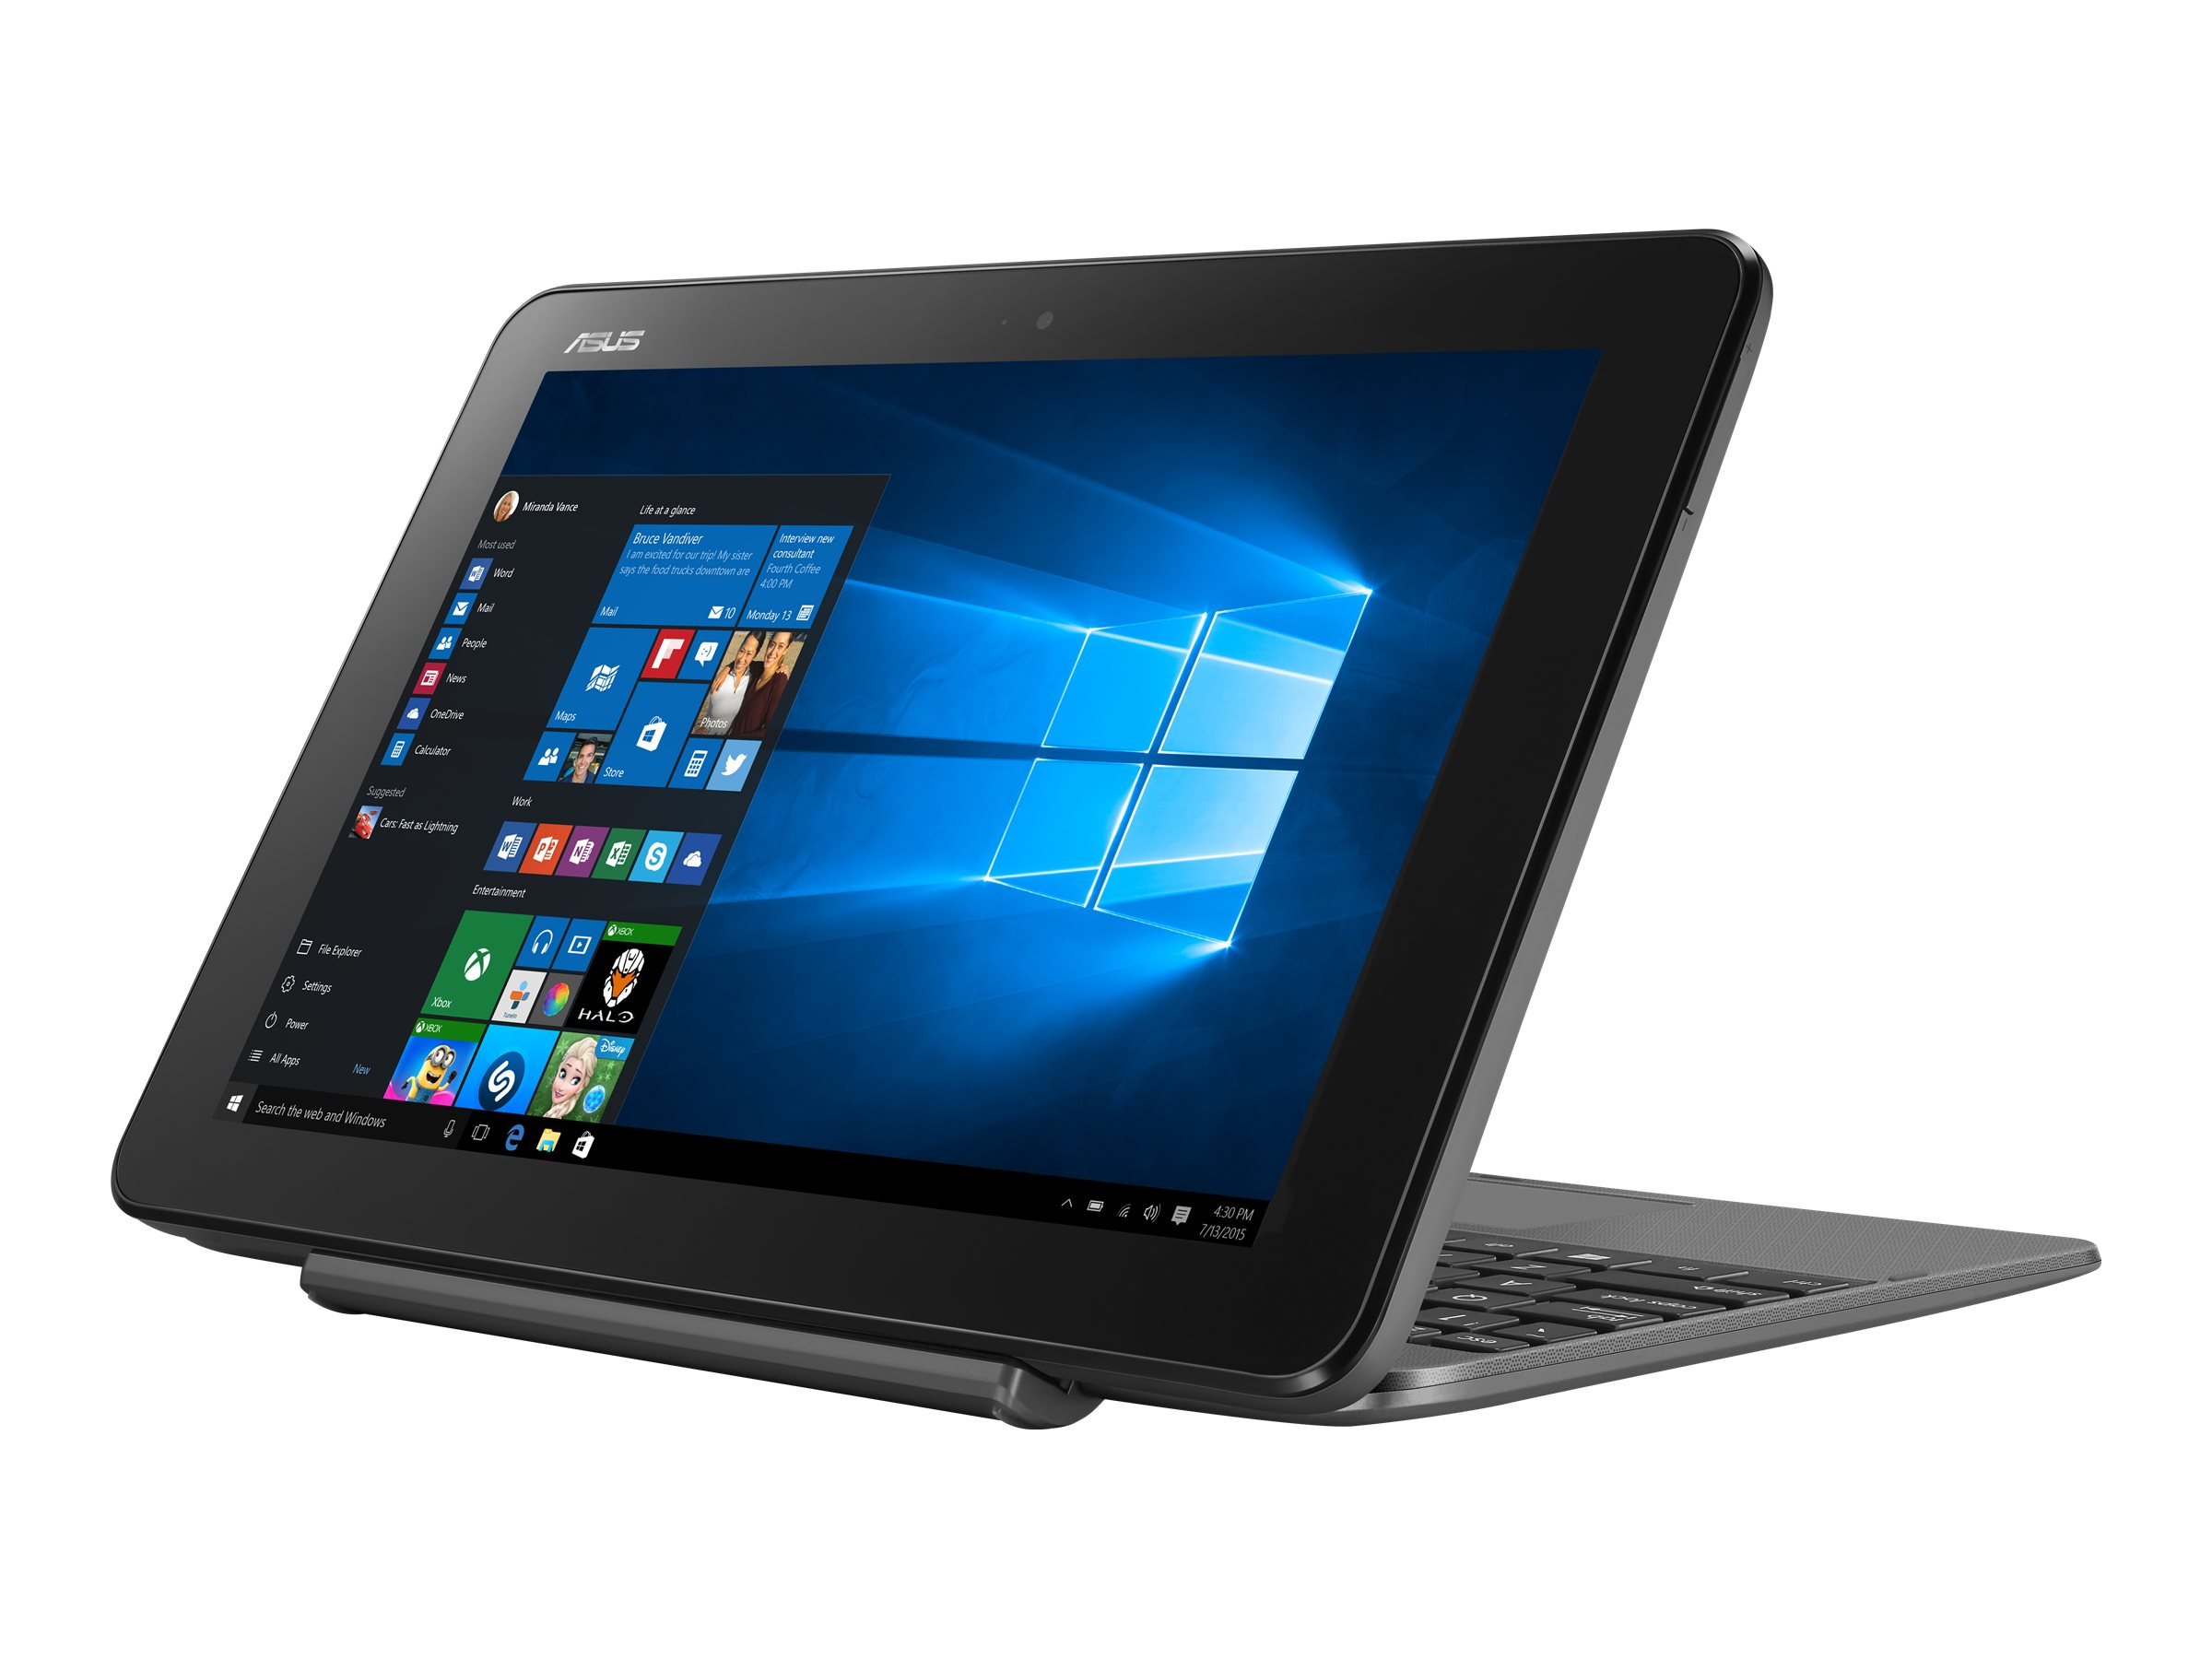 ASUS Transformer Book T101HA GR030R - Tablet - mit Tastatur-Dock - Atom x5 Z8350 / 1.44 GHz - Win 10 Pro 64-Bit - 4 GB RAM